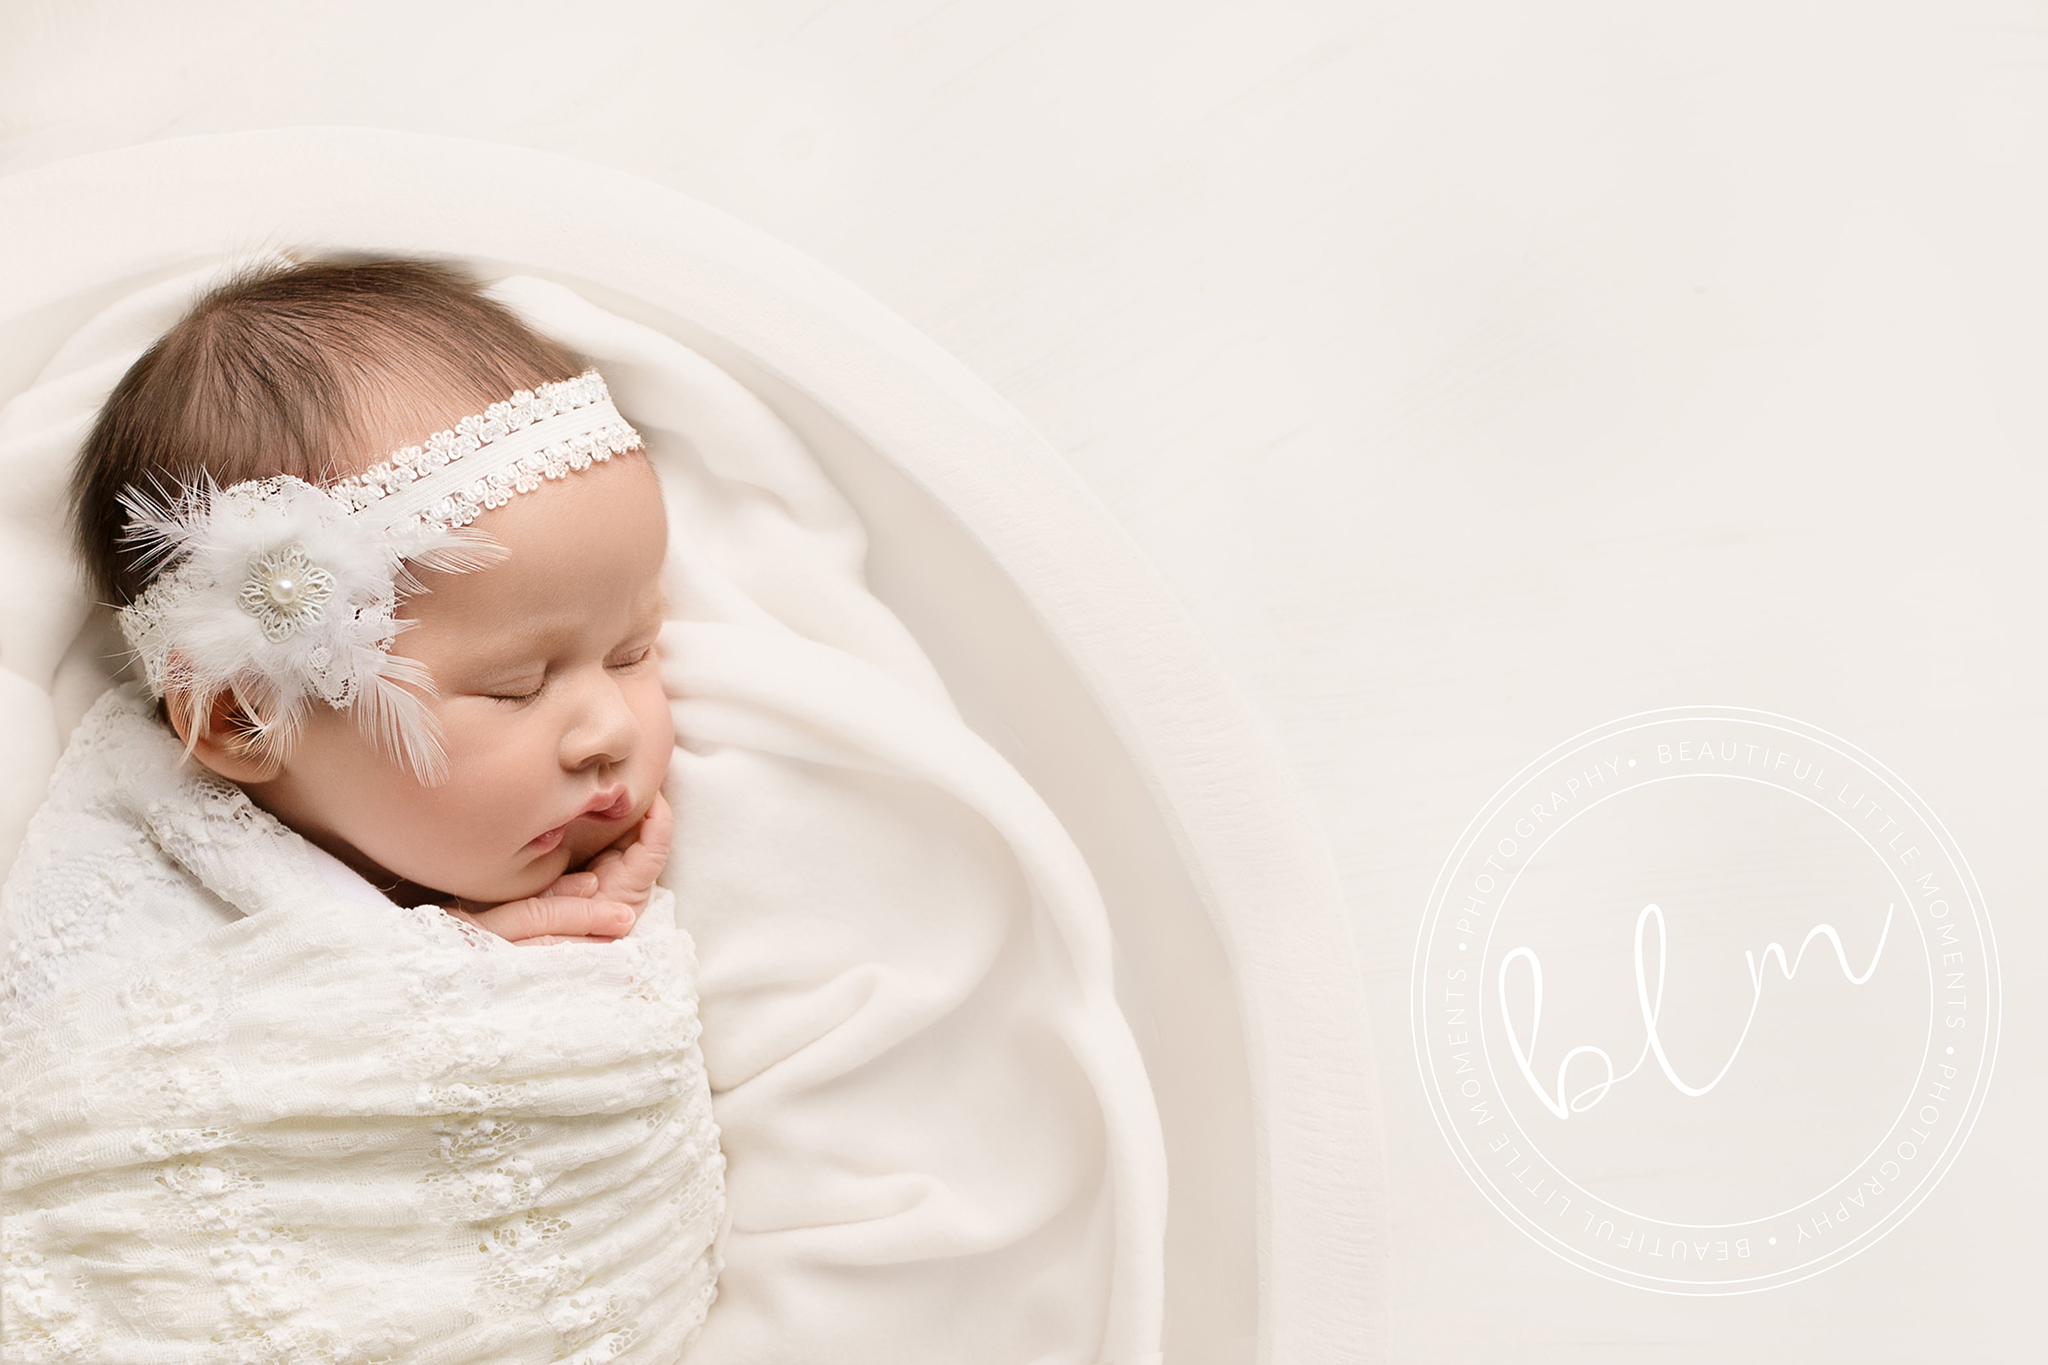 newborn-baby-photo-shoot-epsom-surrey-girl-delicate-white